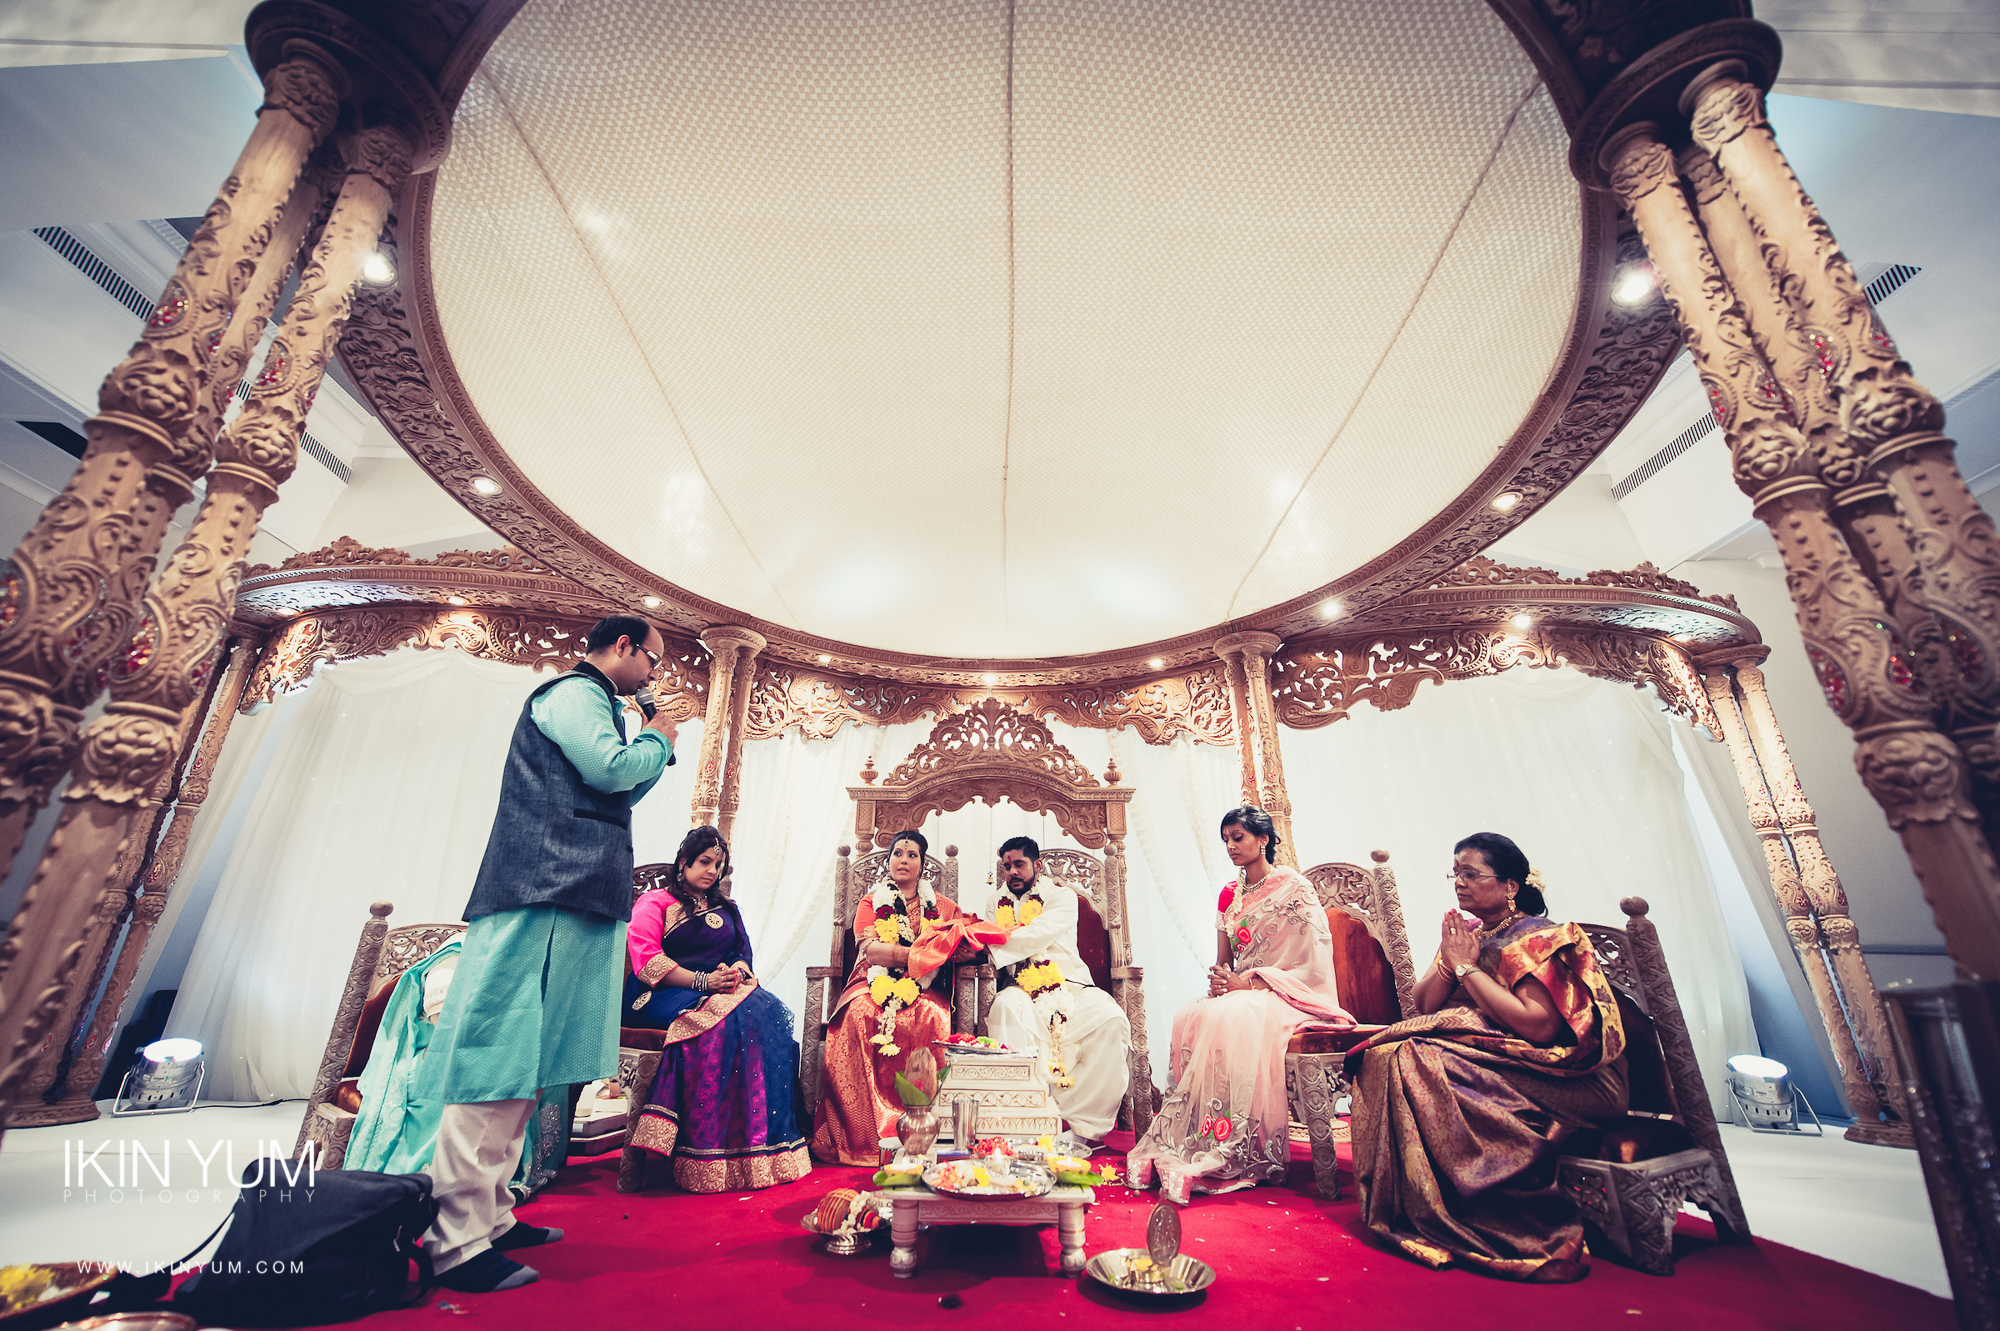 Grand Connaught Rooms Wedding - Minal & Raj - Ikin Yum Photography-049.jpg